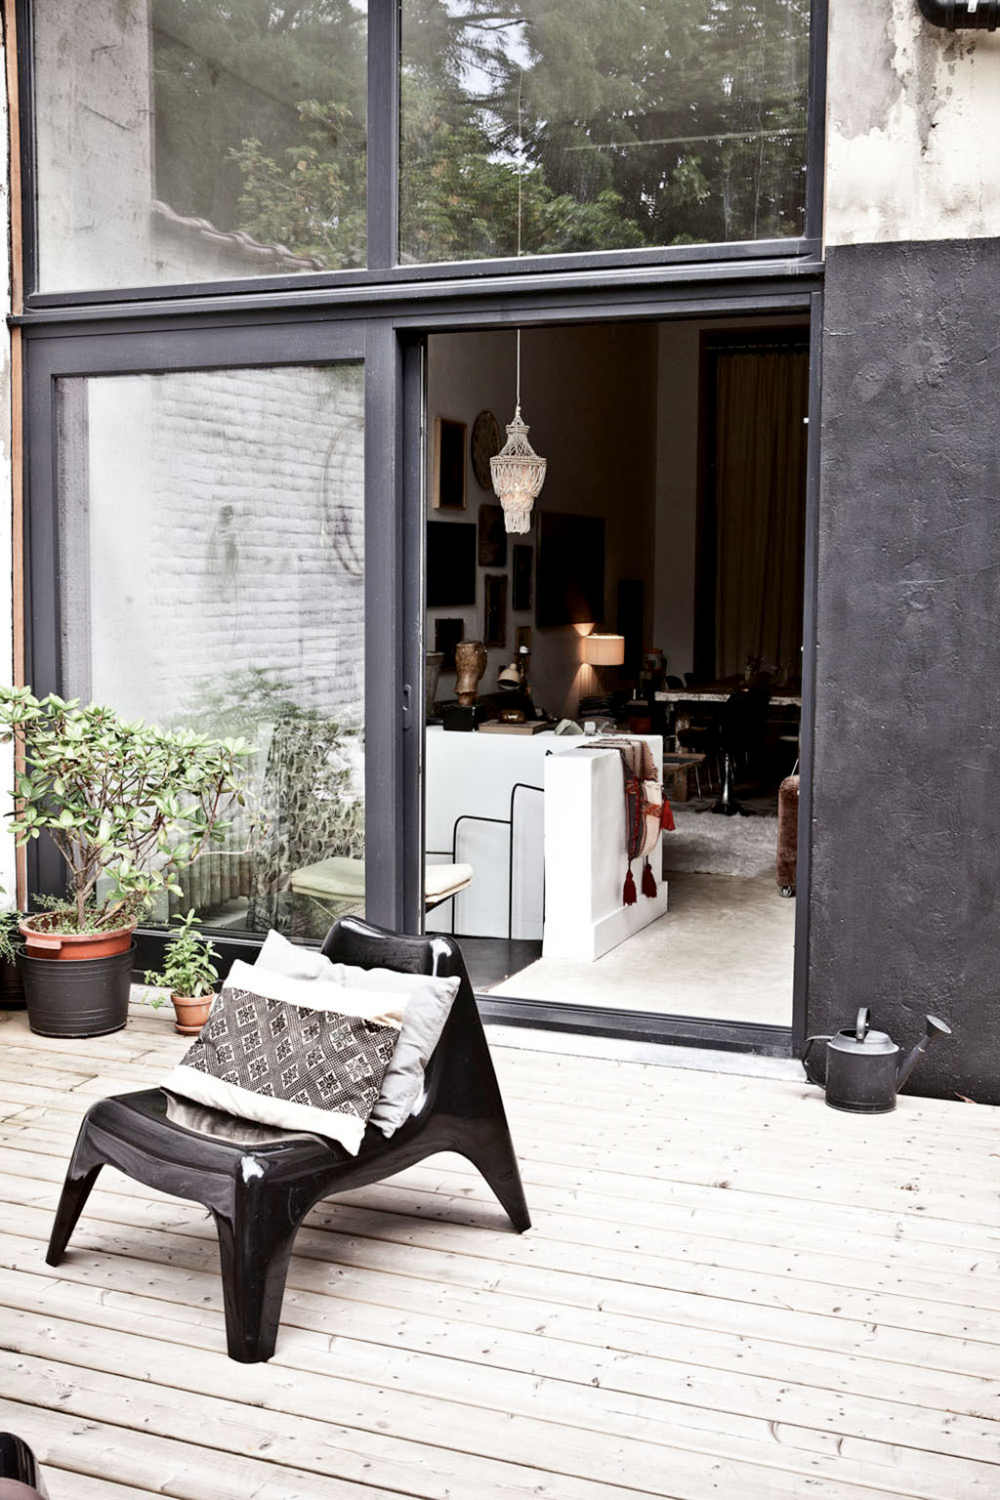 BRING THE OUTDOORS INSIDE WITH THIS INTERIOR STYLE